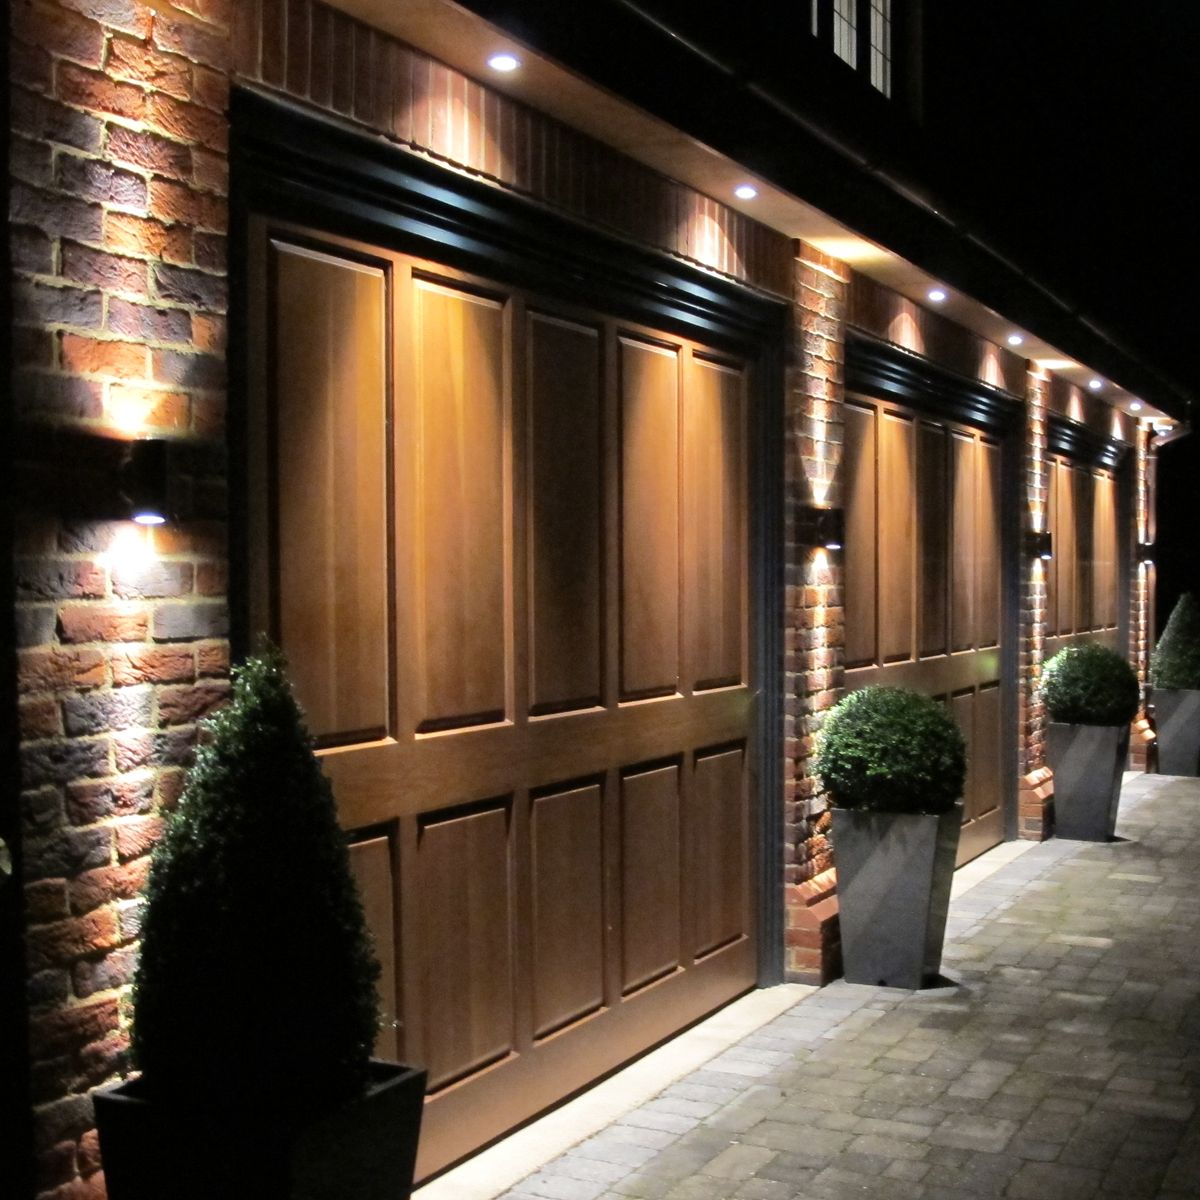 landscape lighting fixtures what are your options with on awesome deck patio outdoor lighting ideas that lighten up your space id=89420